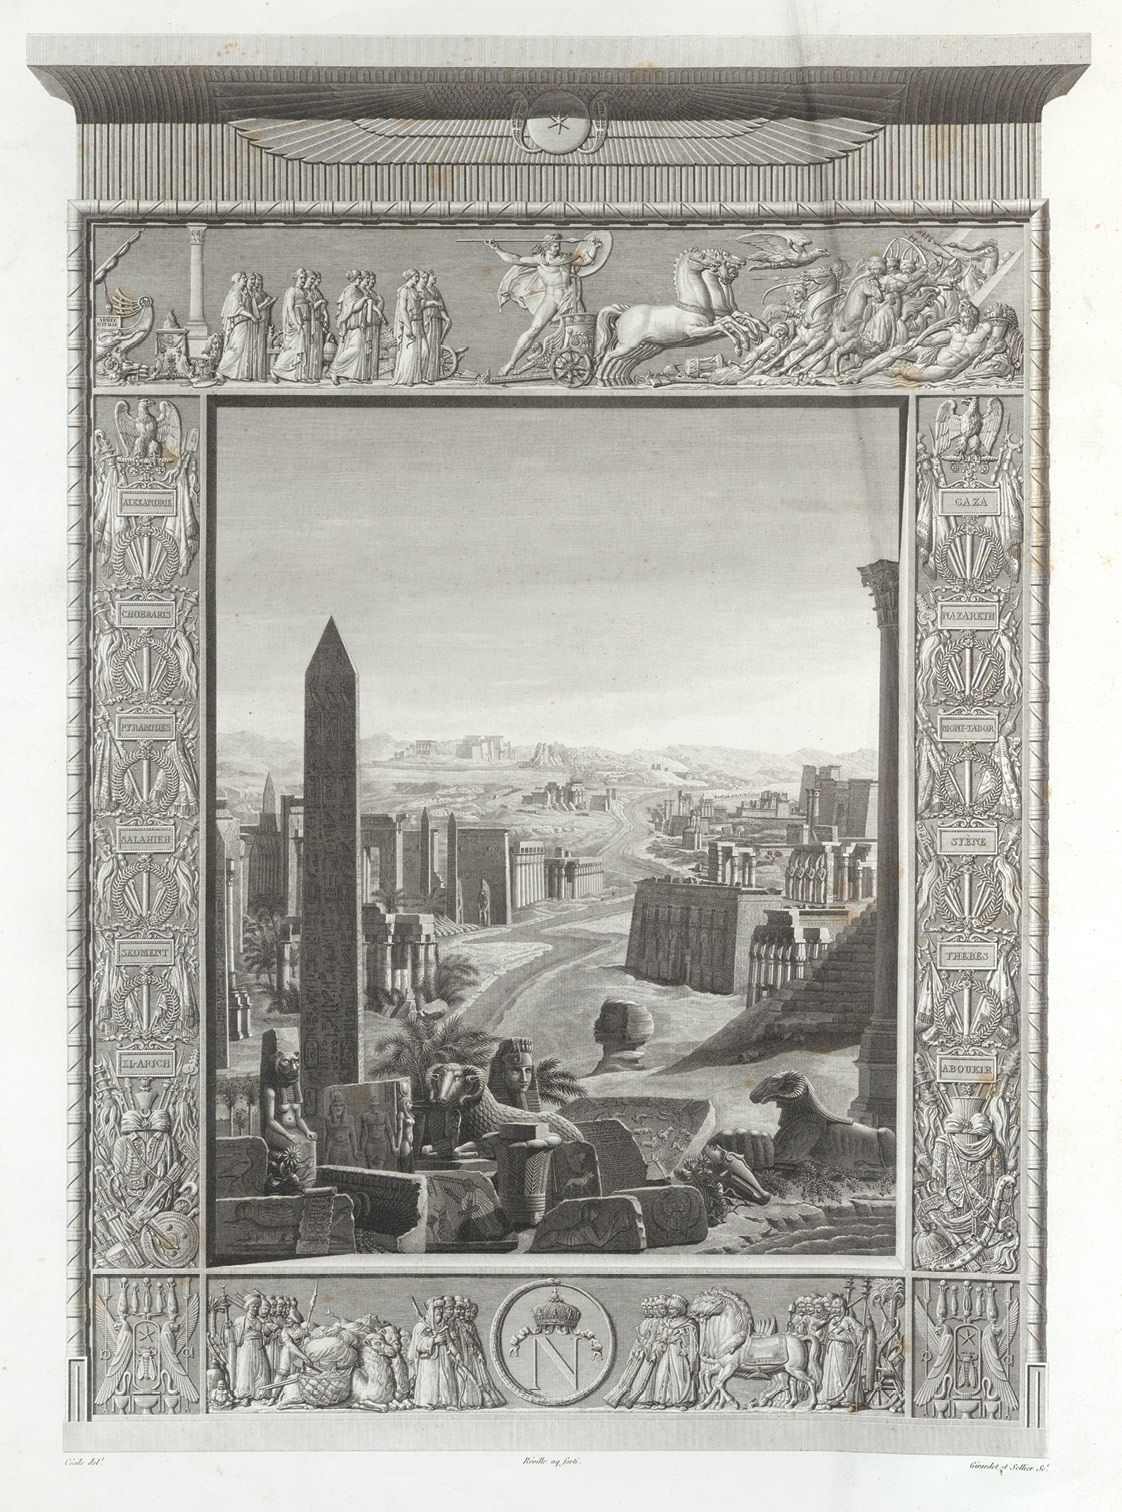 above Frontispiece to the first volume of the Napoleonic Description de l'Égypte, published in 1809.